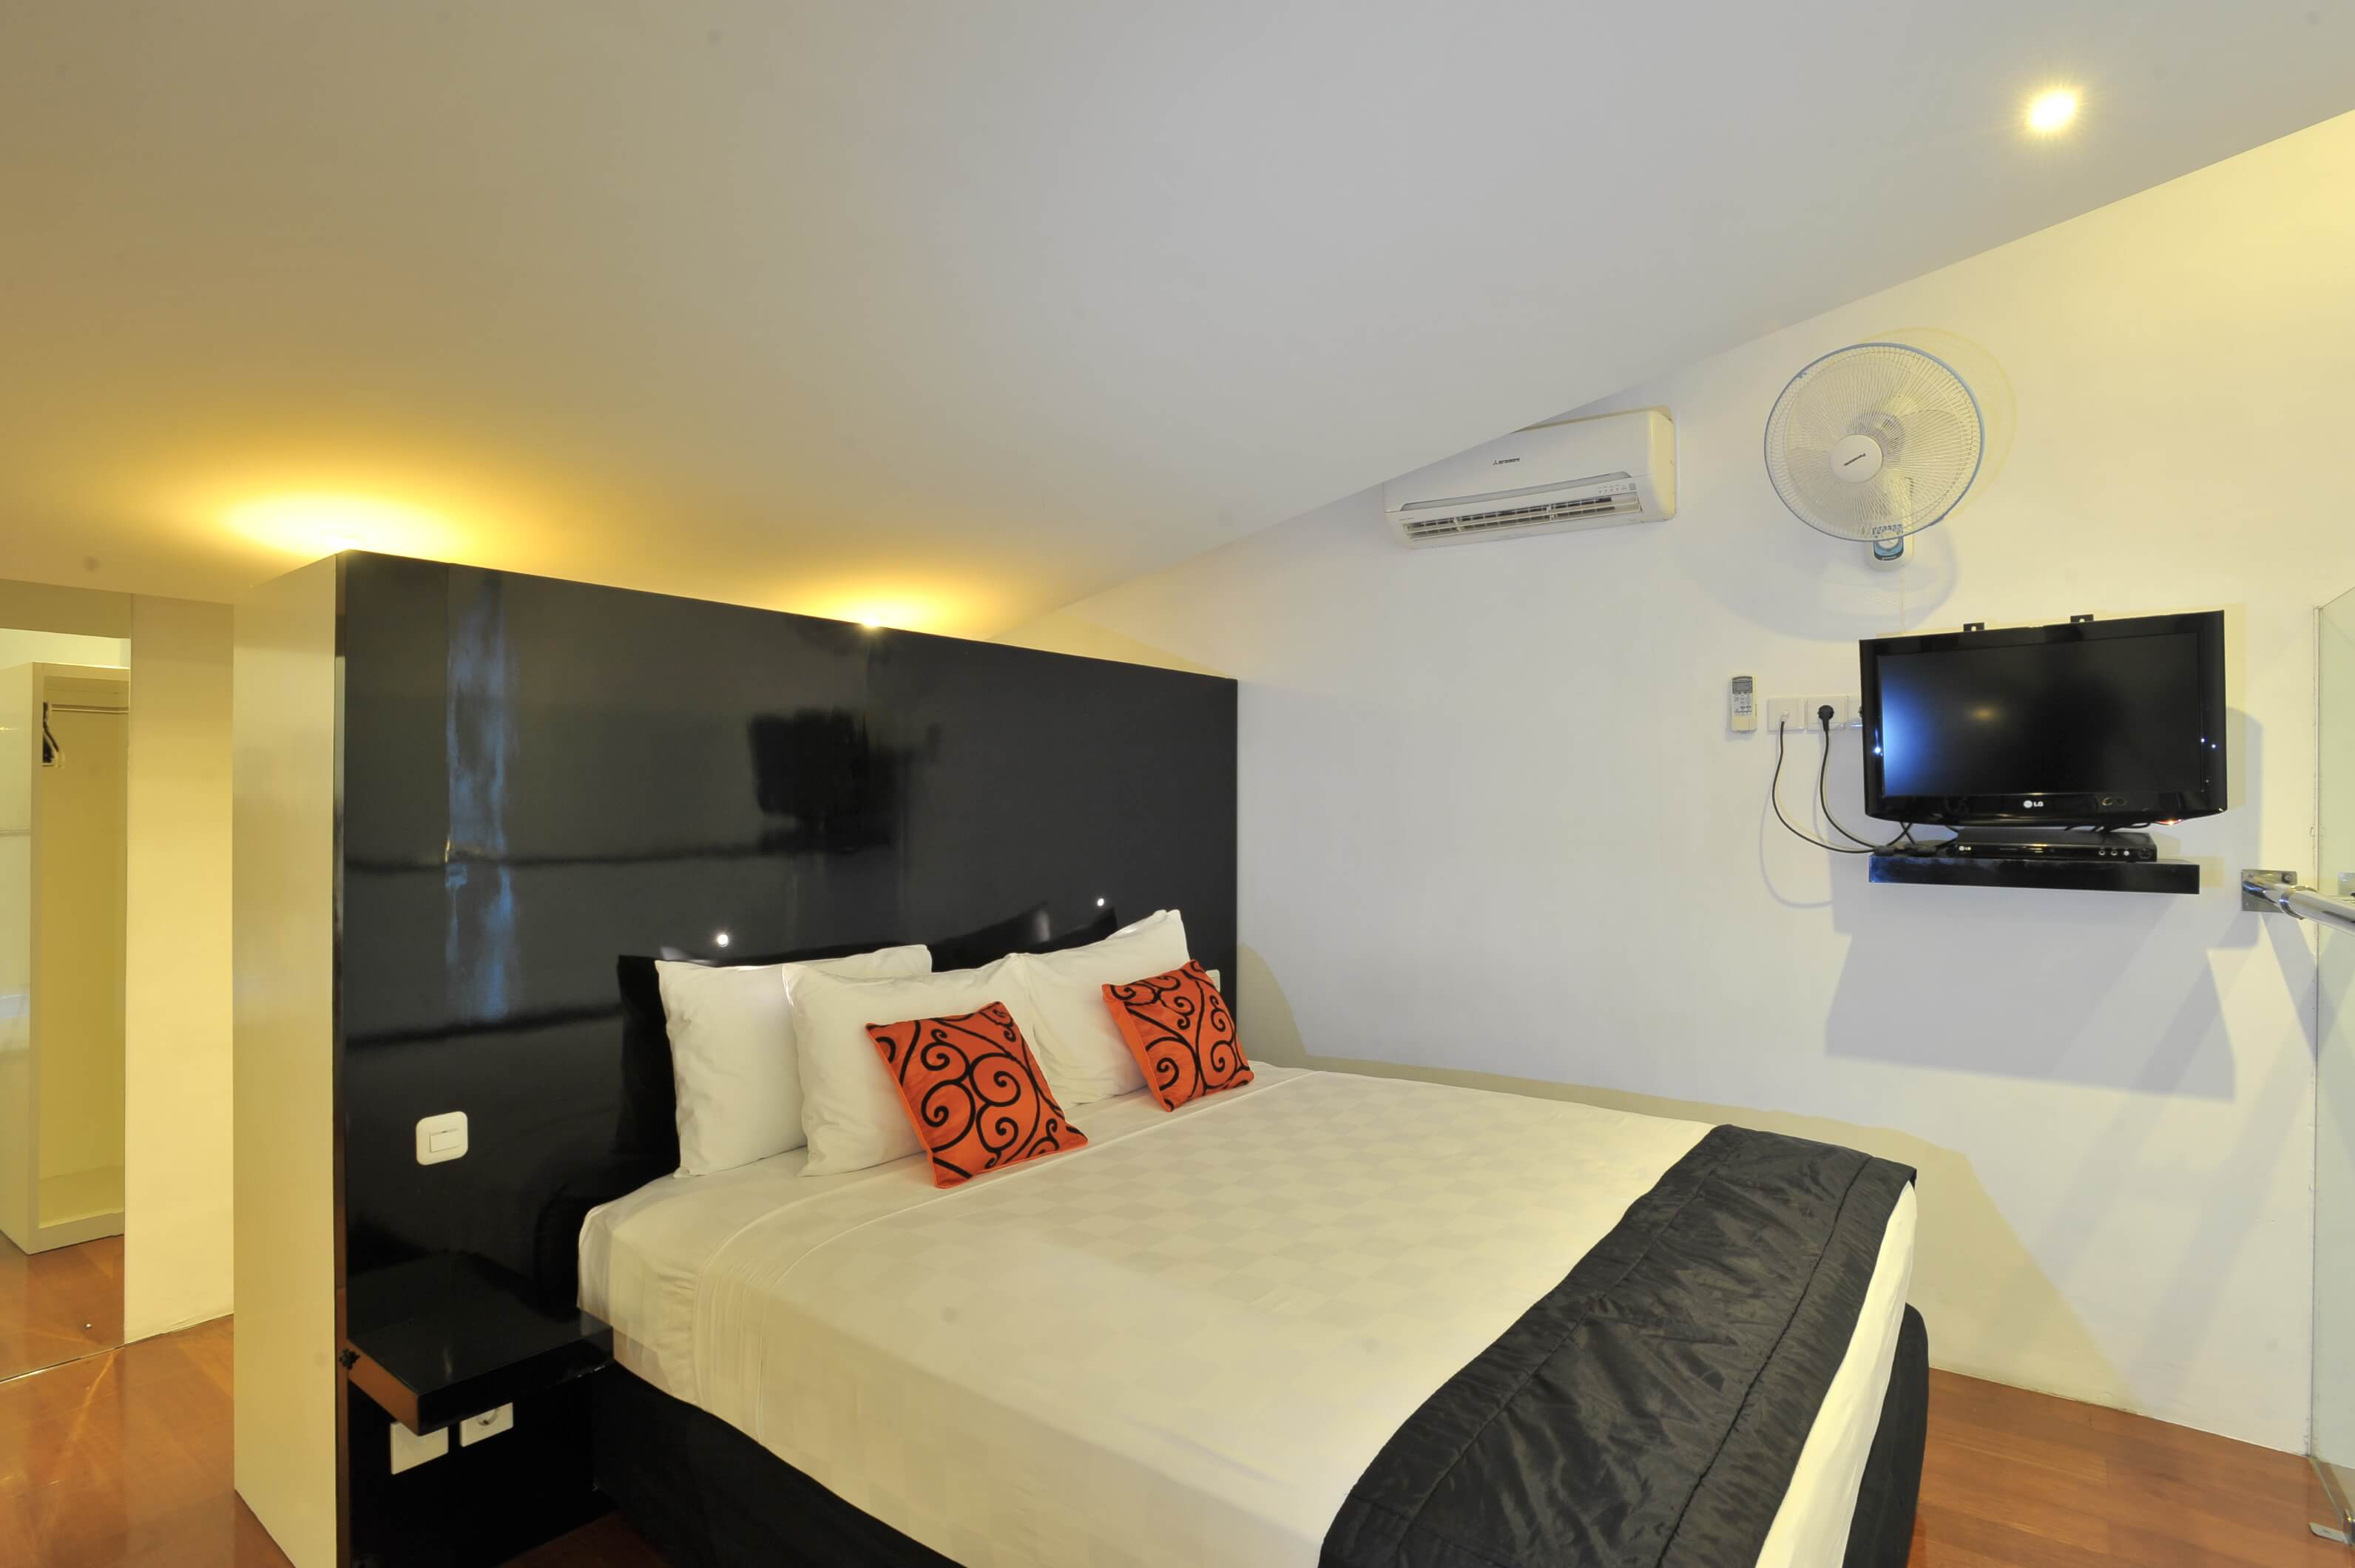 One Bedroom Apartment Affordable Luxury Accommodation Villas In Seminyak Bali Yarra Villas